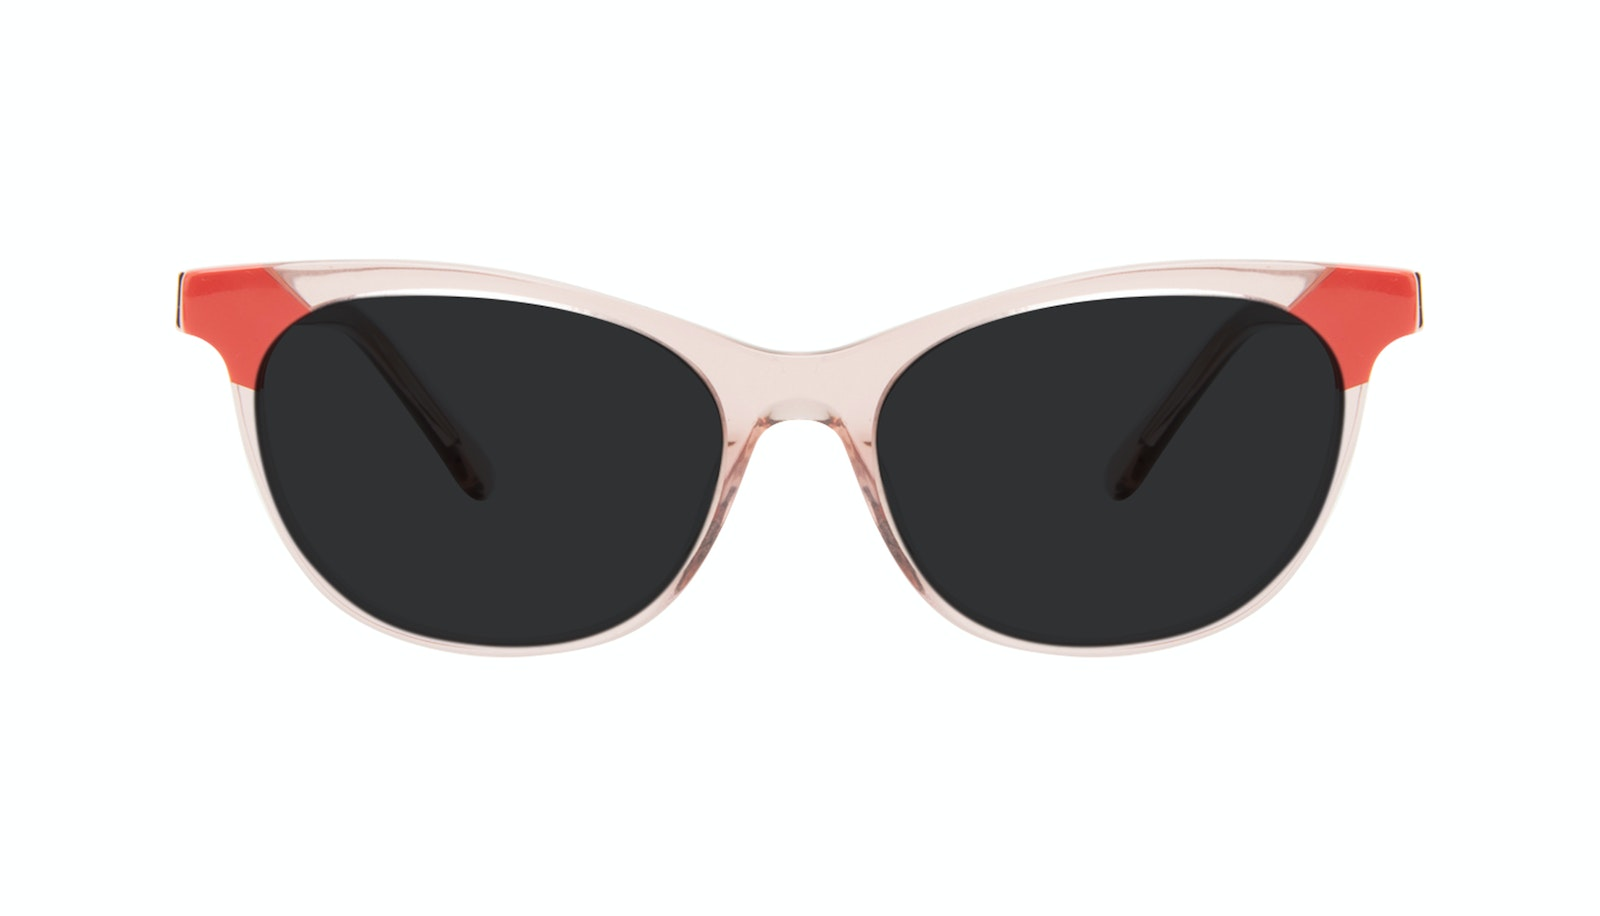 Affordable Fashion Glasses Cat Eye Sunglasses Women Witty Pink Coral